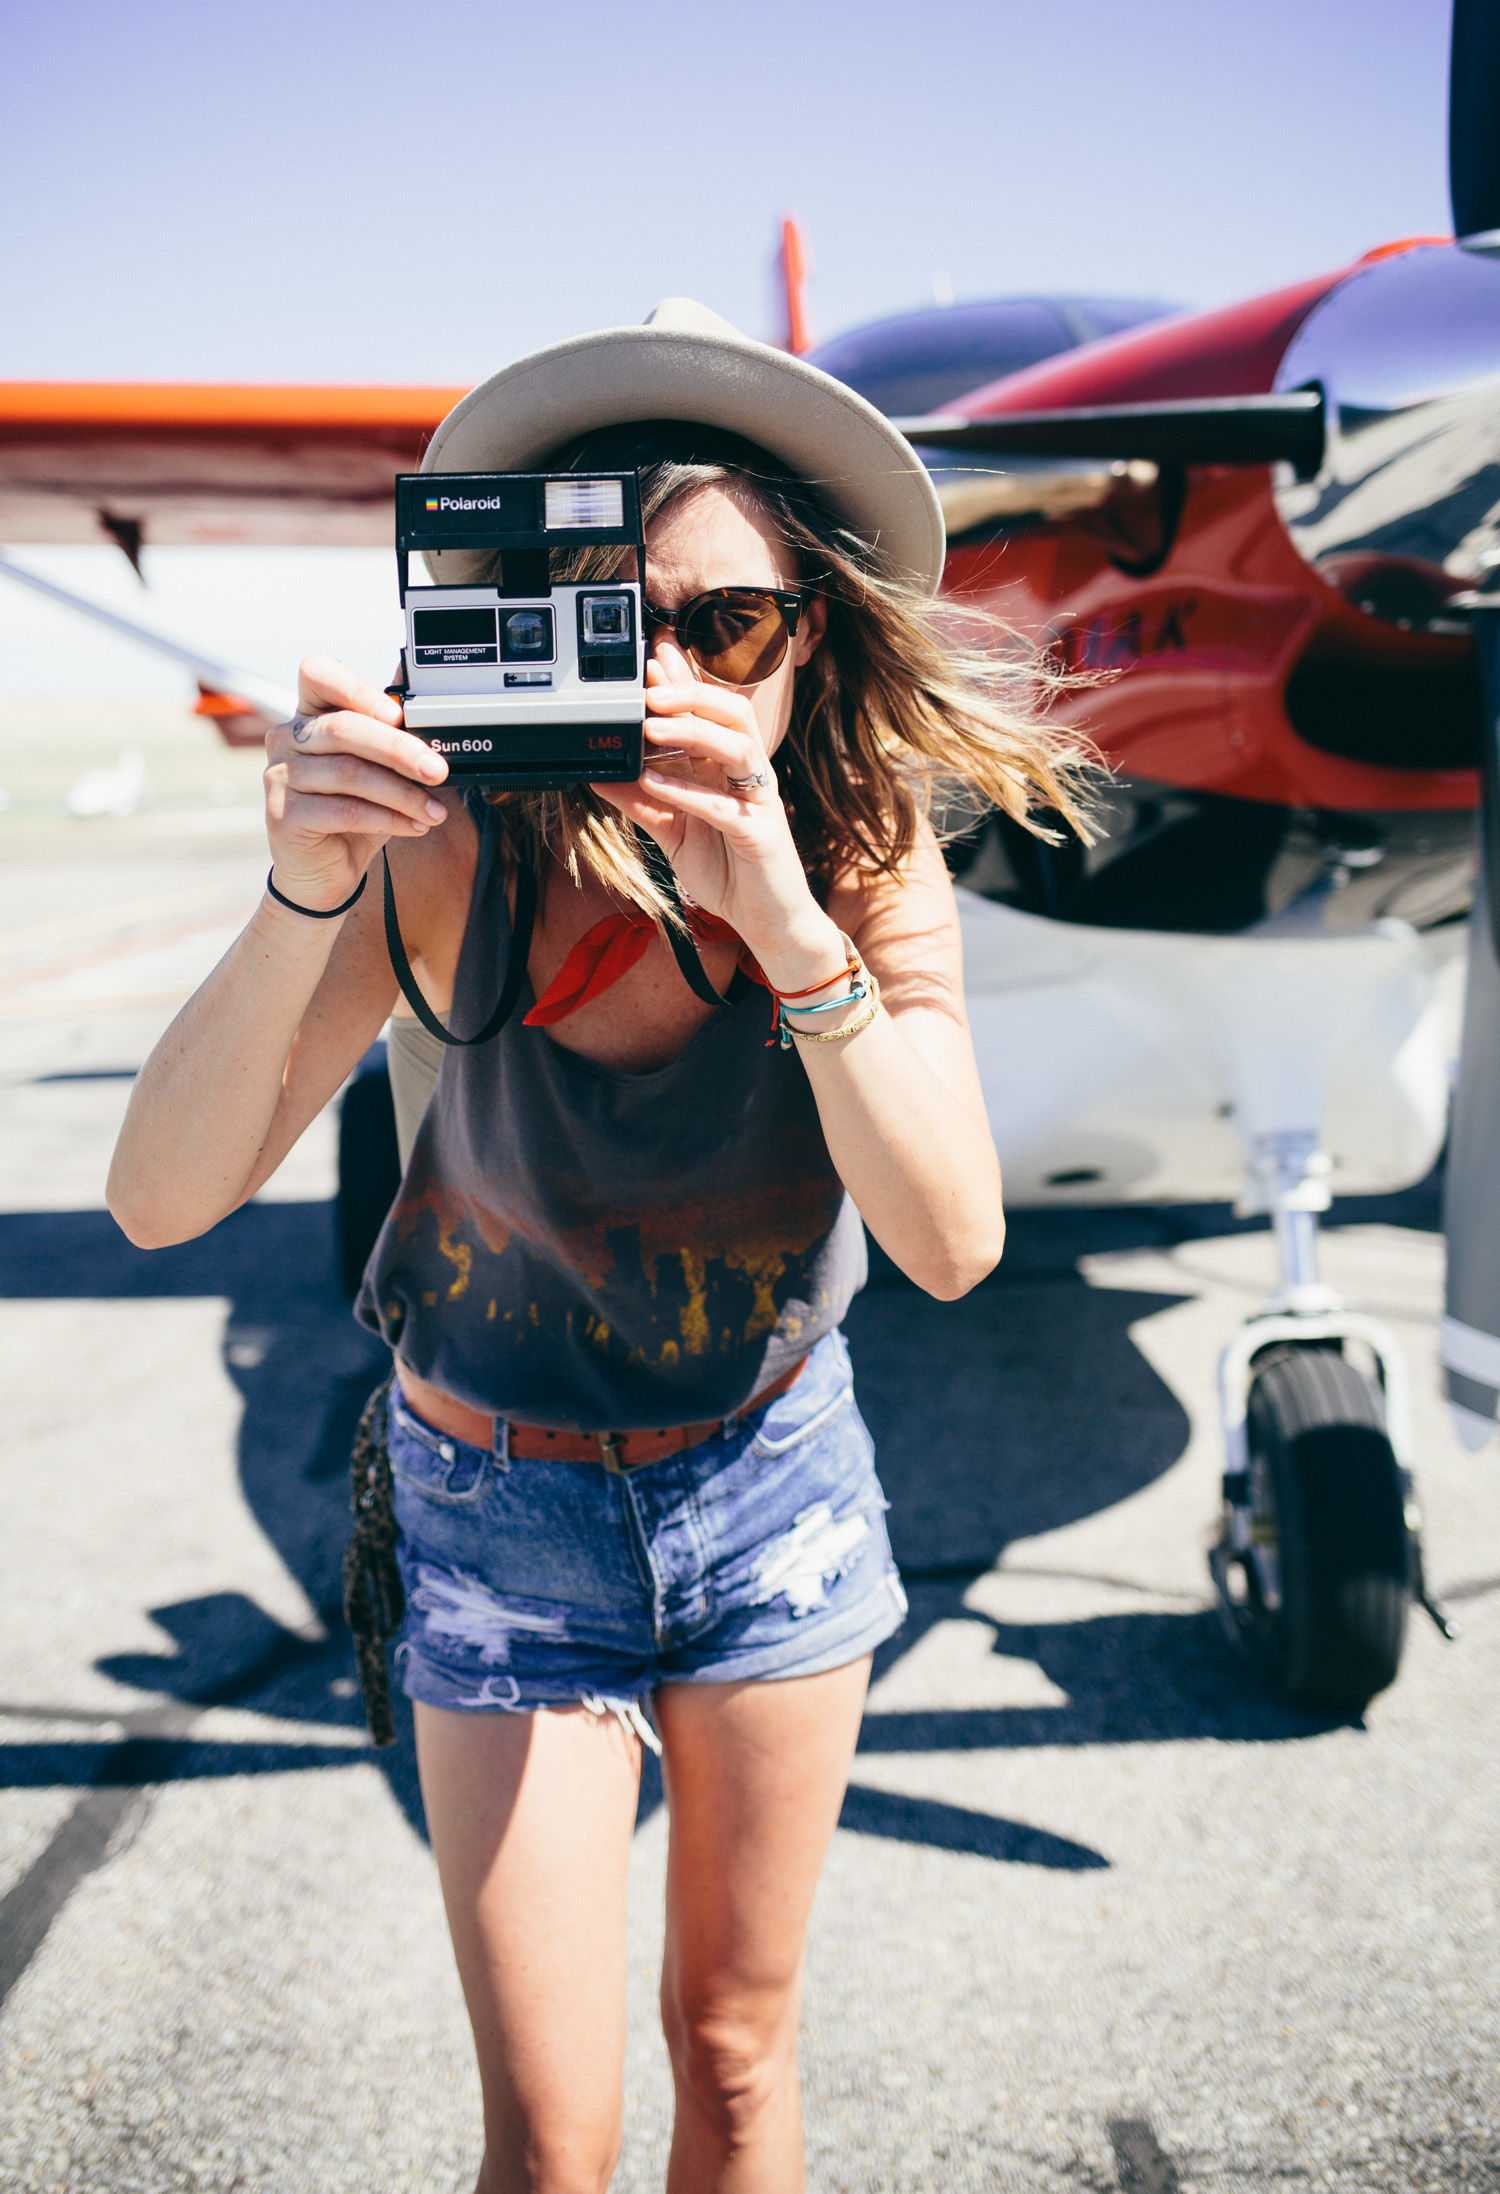 photo of girl taking a photo with a Polaroid camera